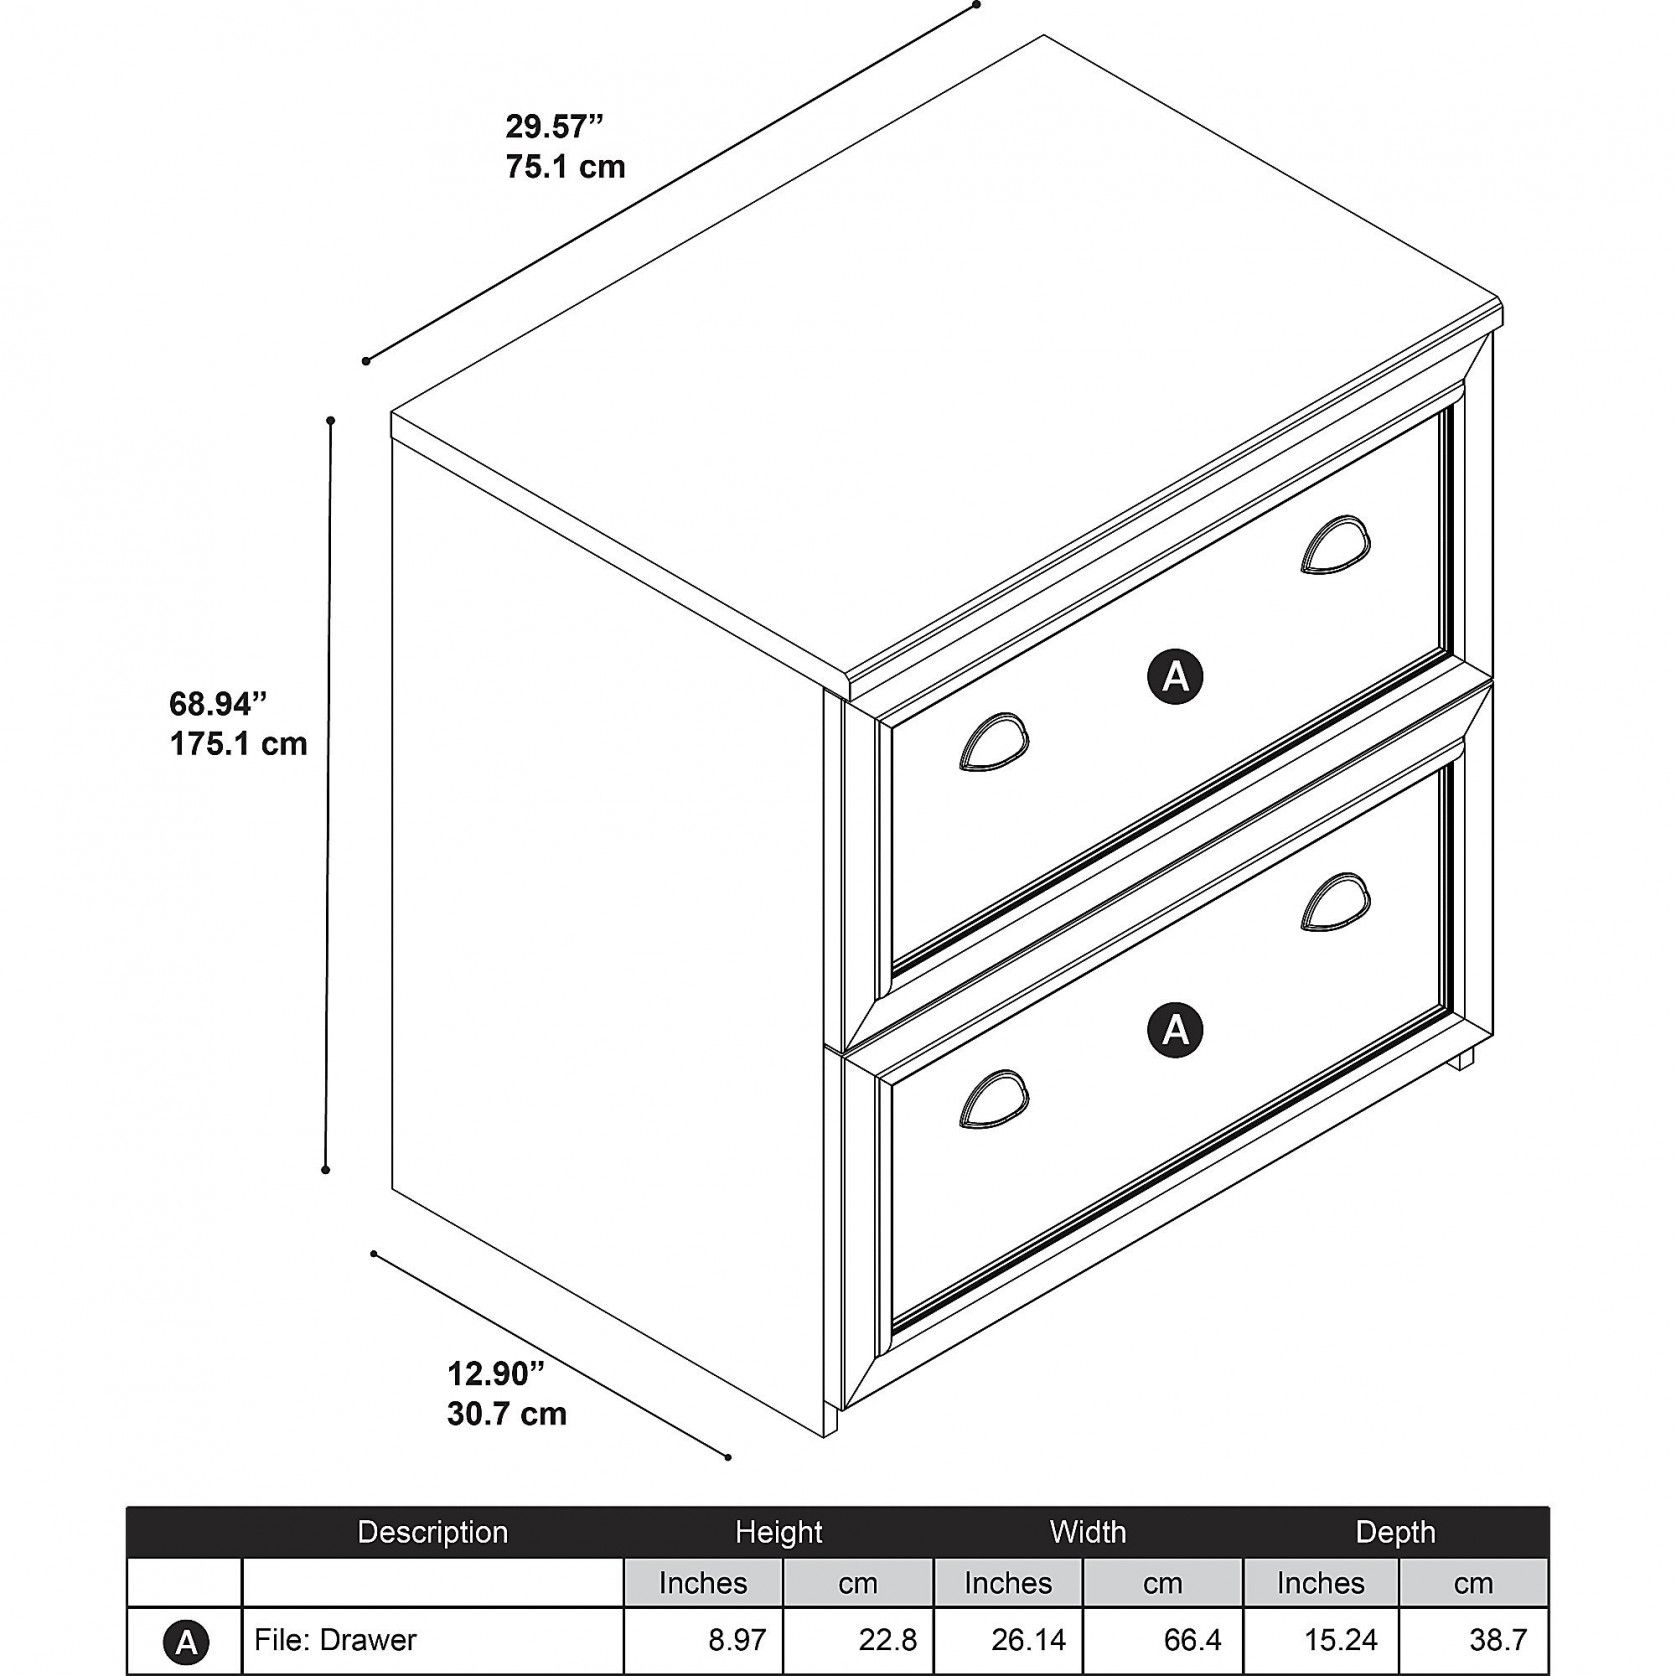 99 2 Drawer Lateral File Cabinet Dimensions Apartment Kitchen Cabinet Ideas Check More At Http Www Planet Bookcase Storage Bush Furniture 5 Shelf Bookcase